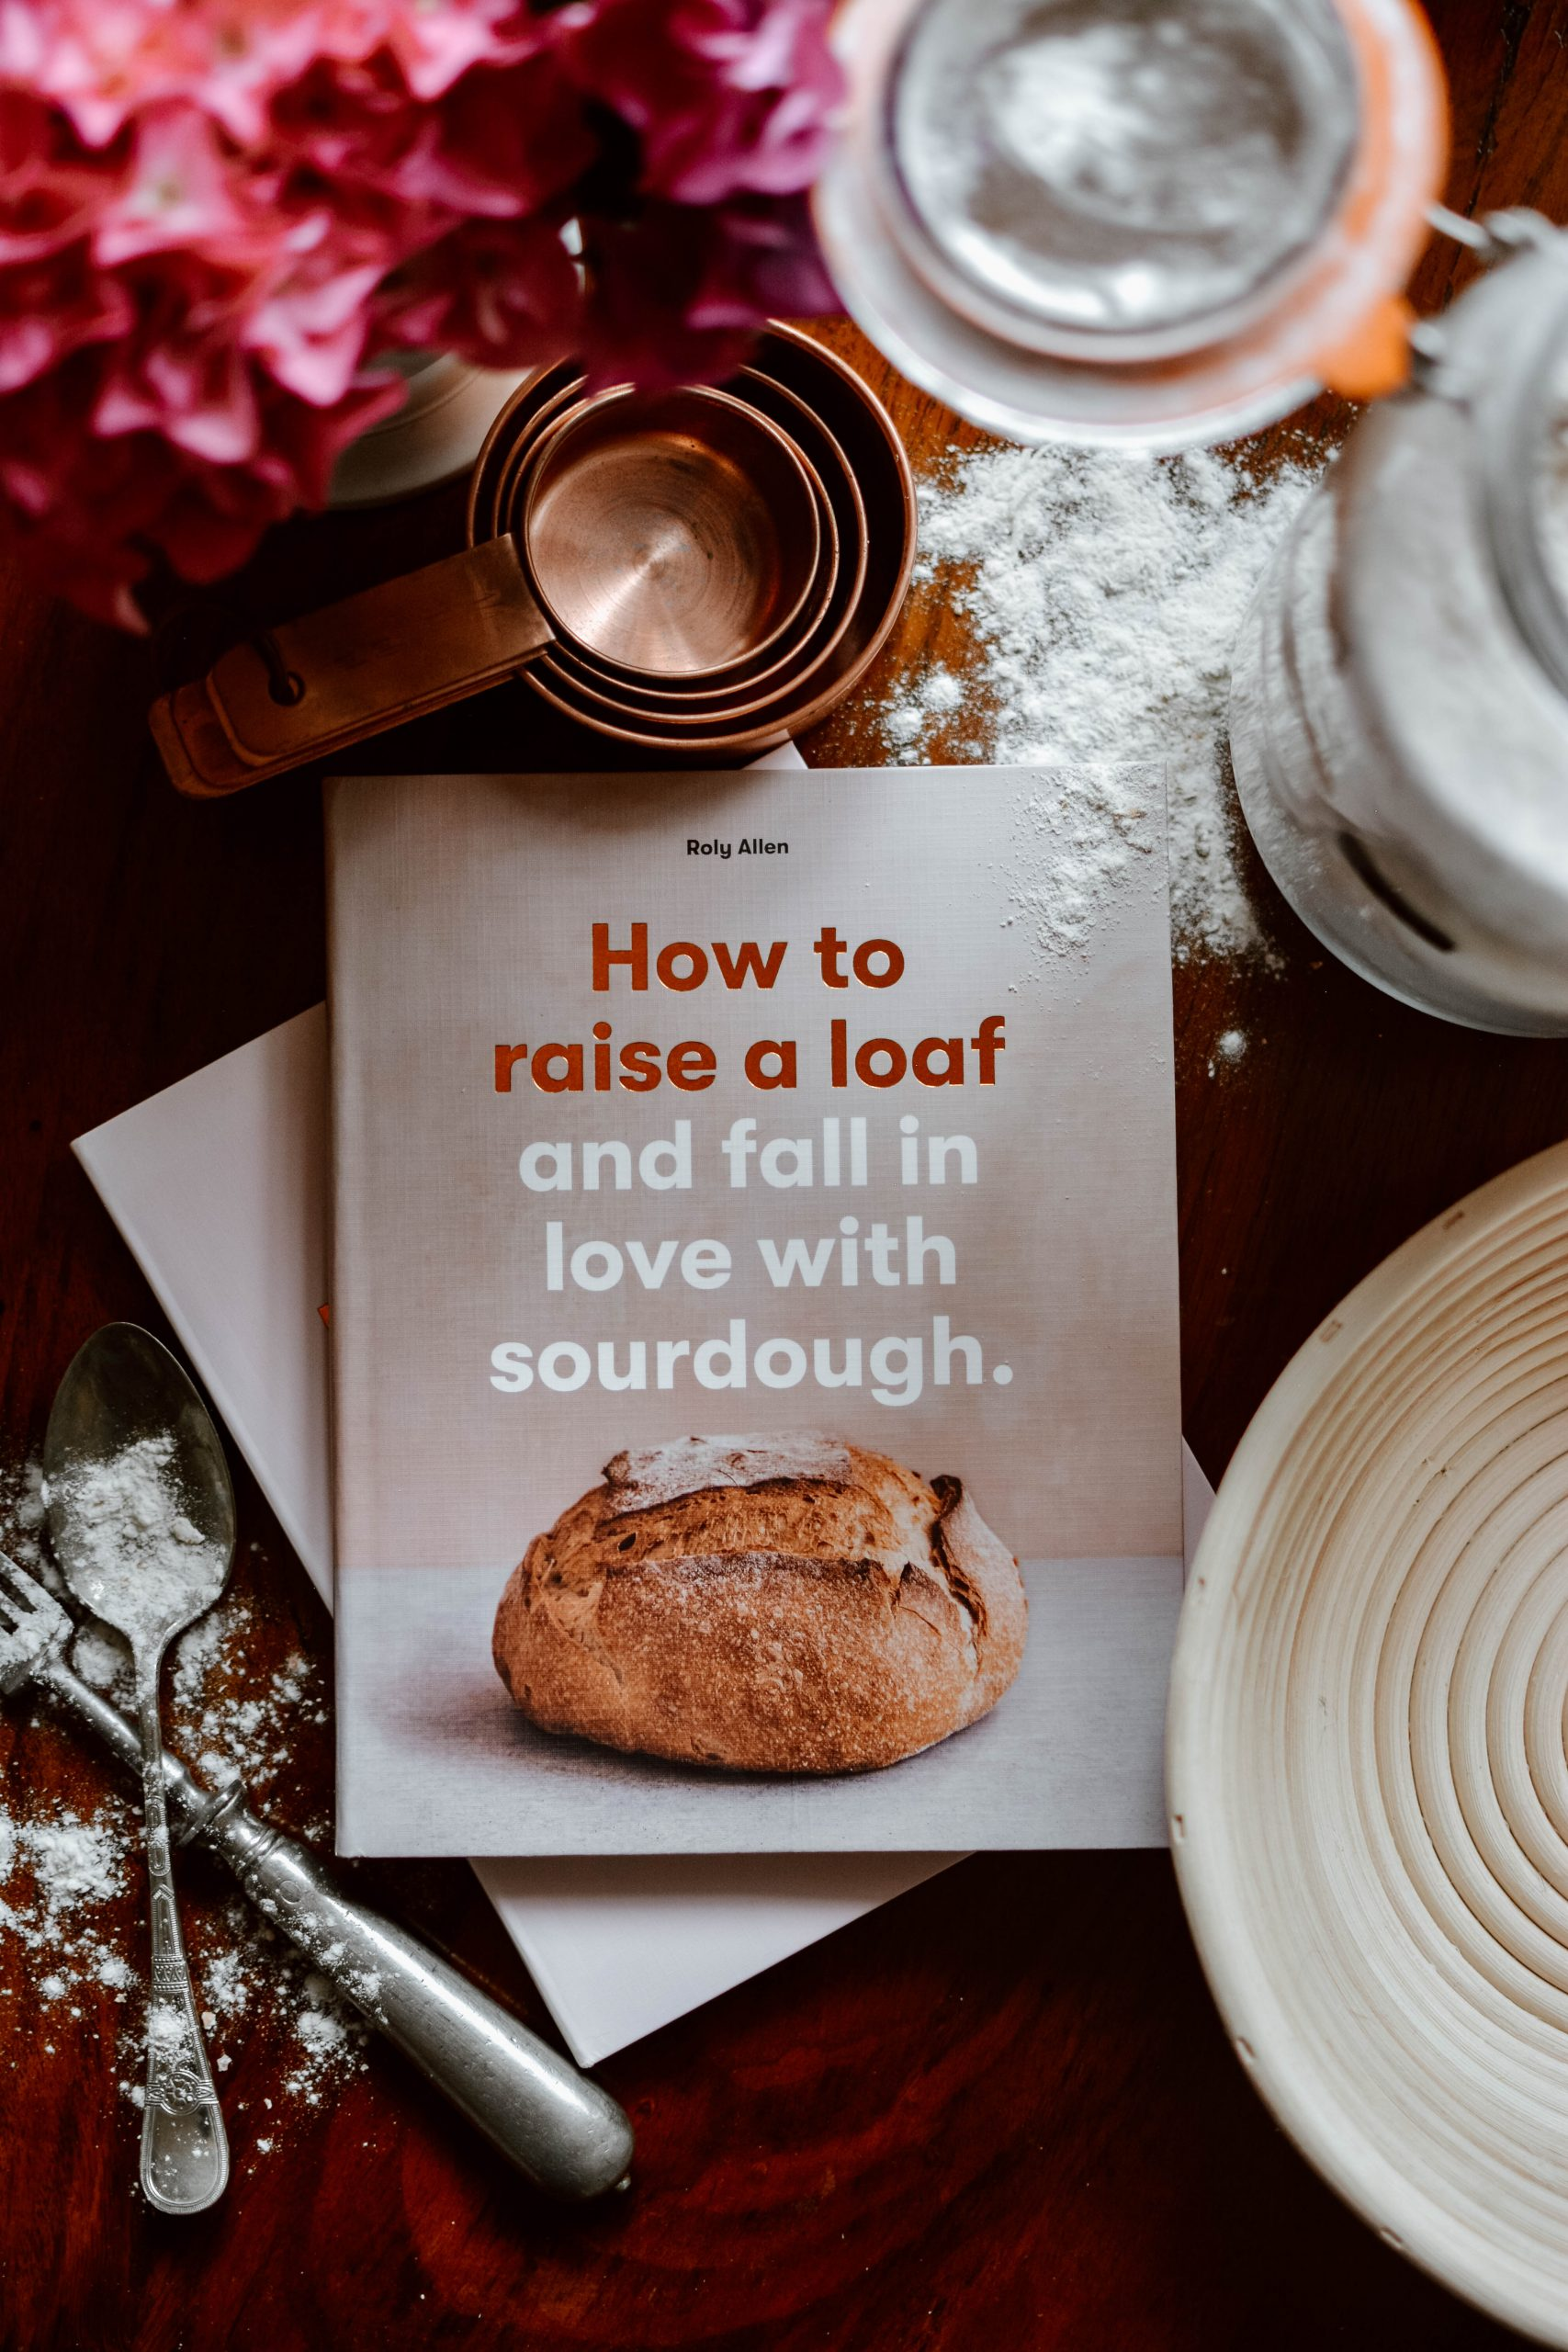 How to raise a loaf & fall in love with sourdough by Roly Allen